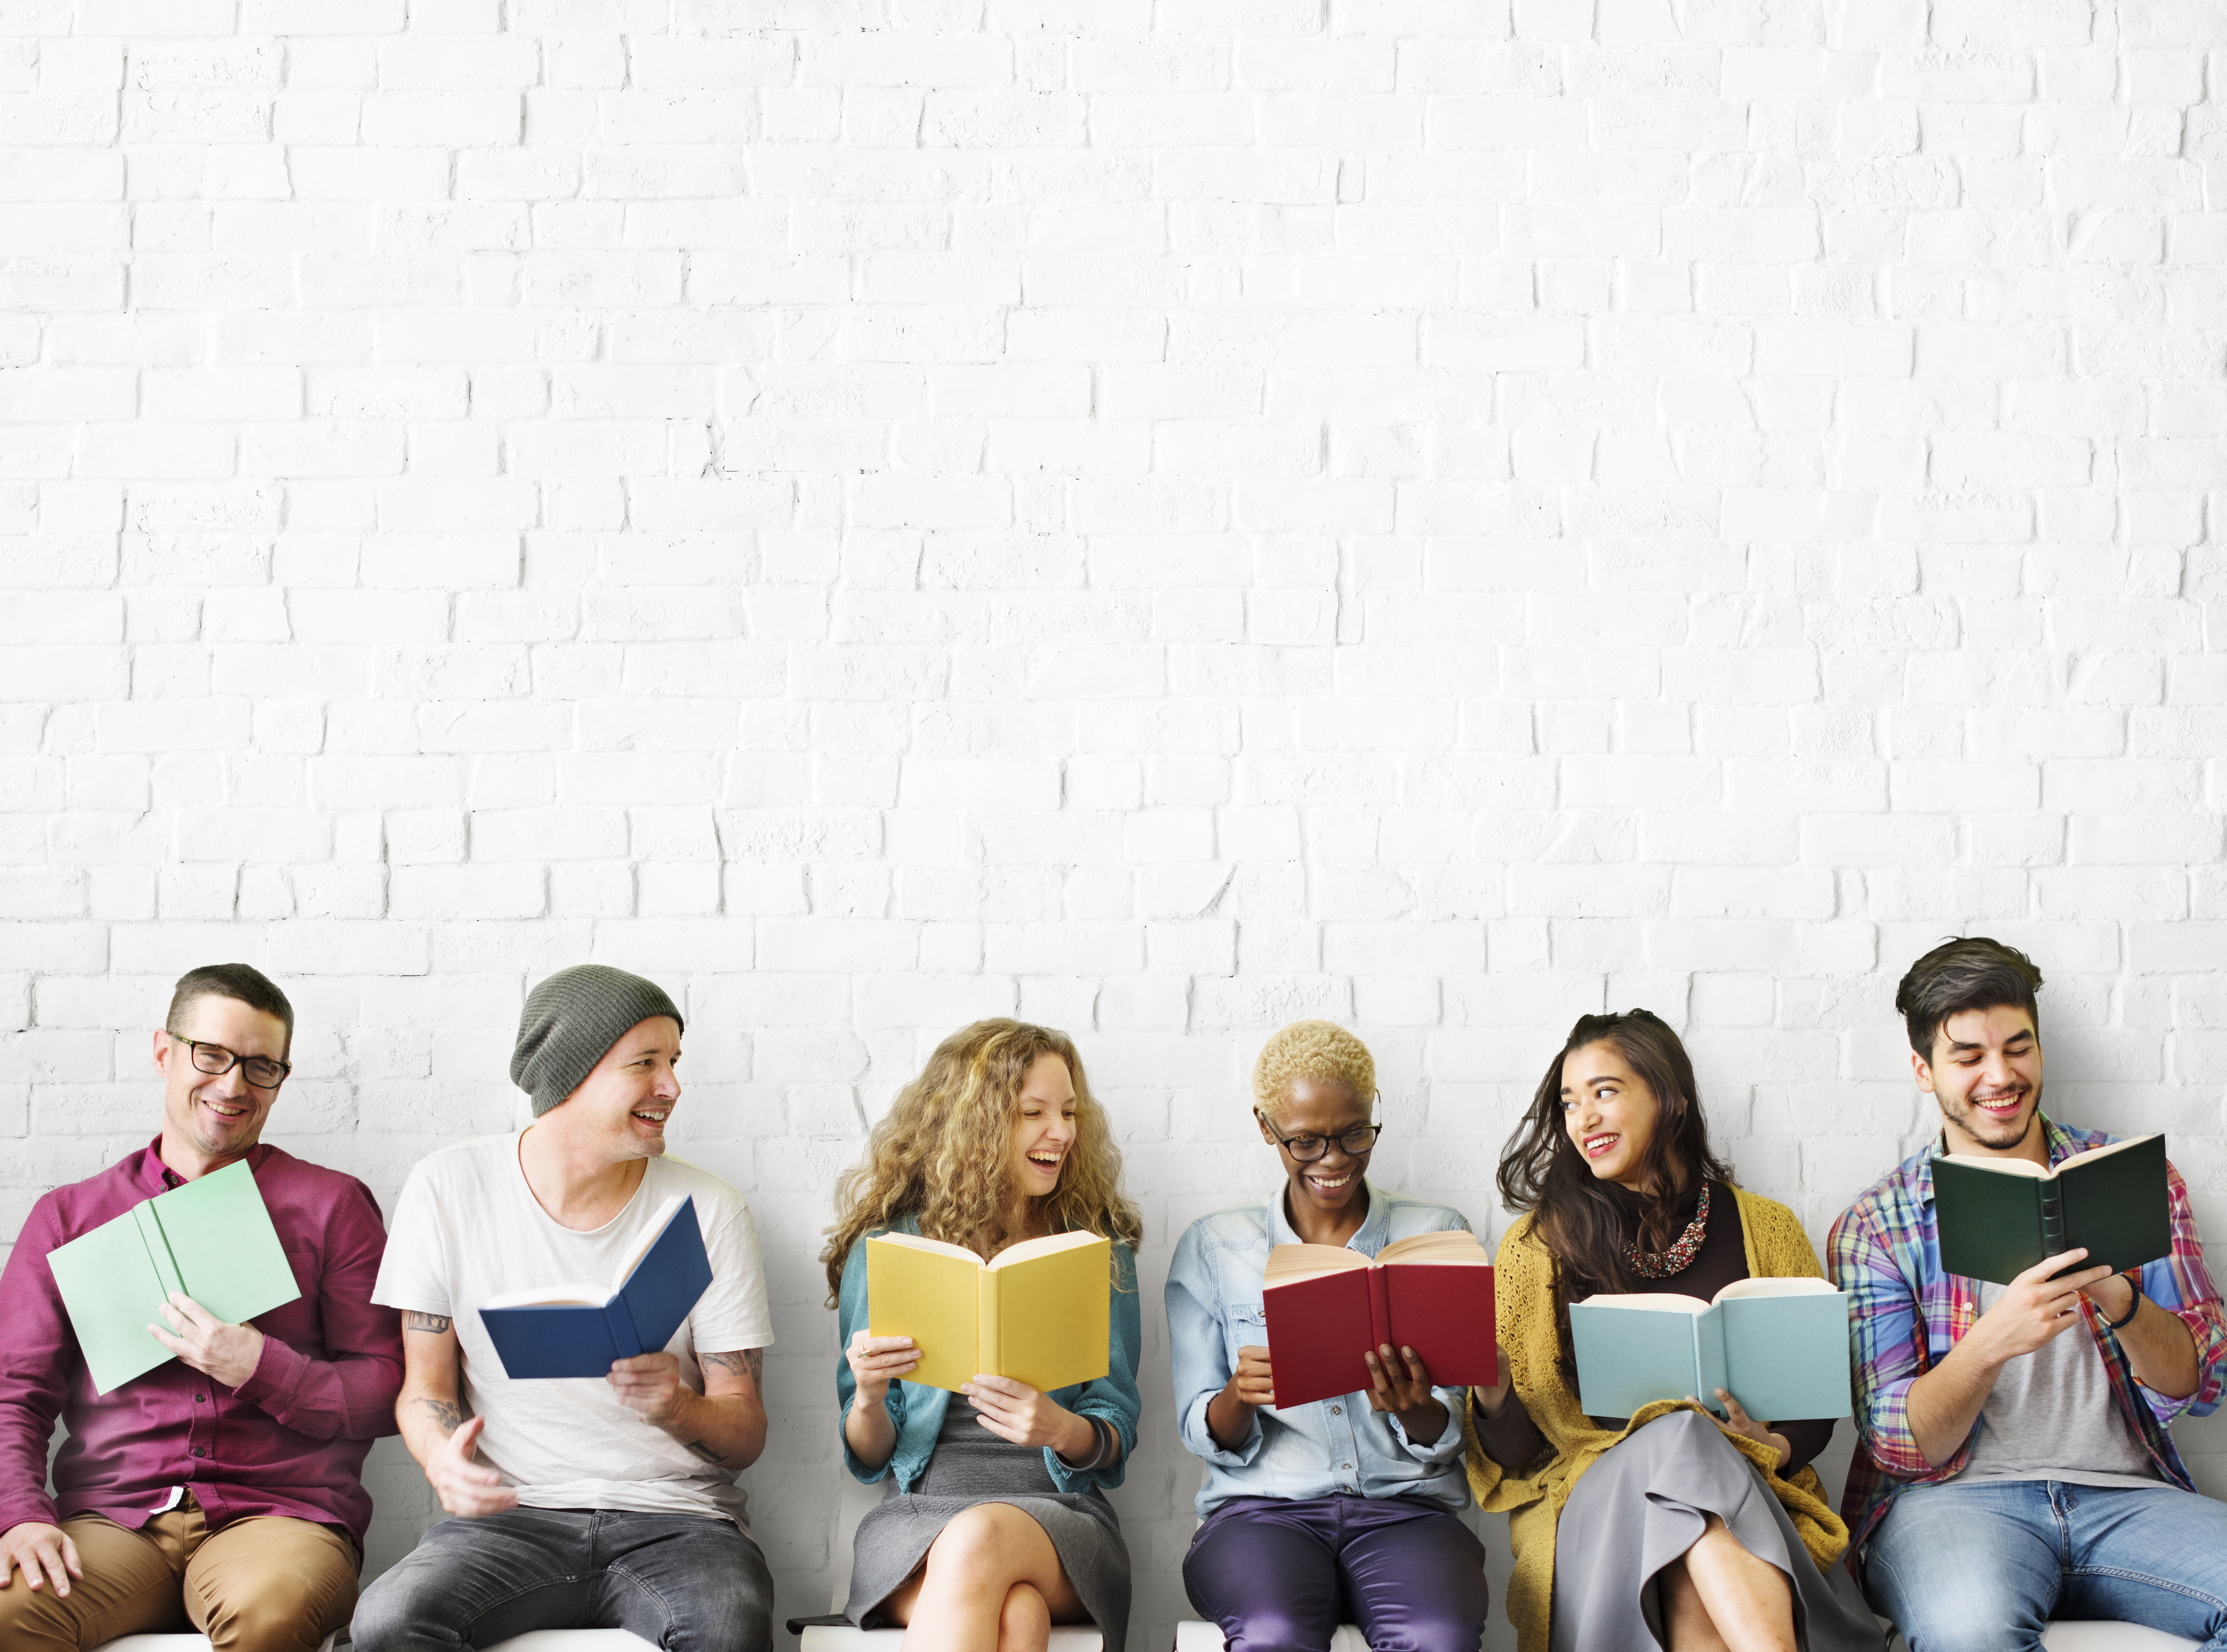 Diverse people reading books